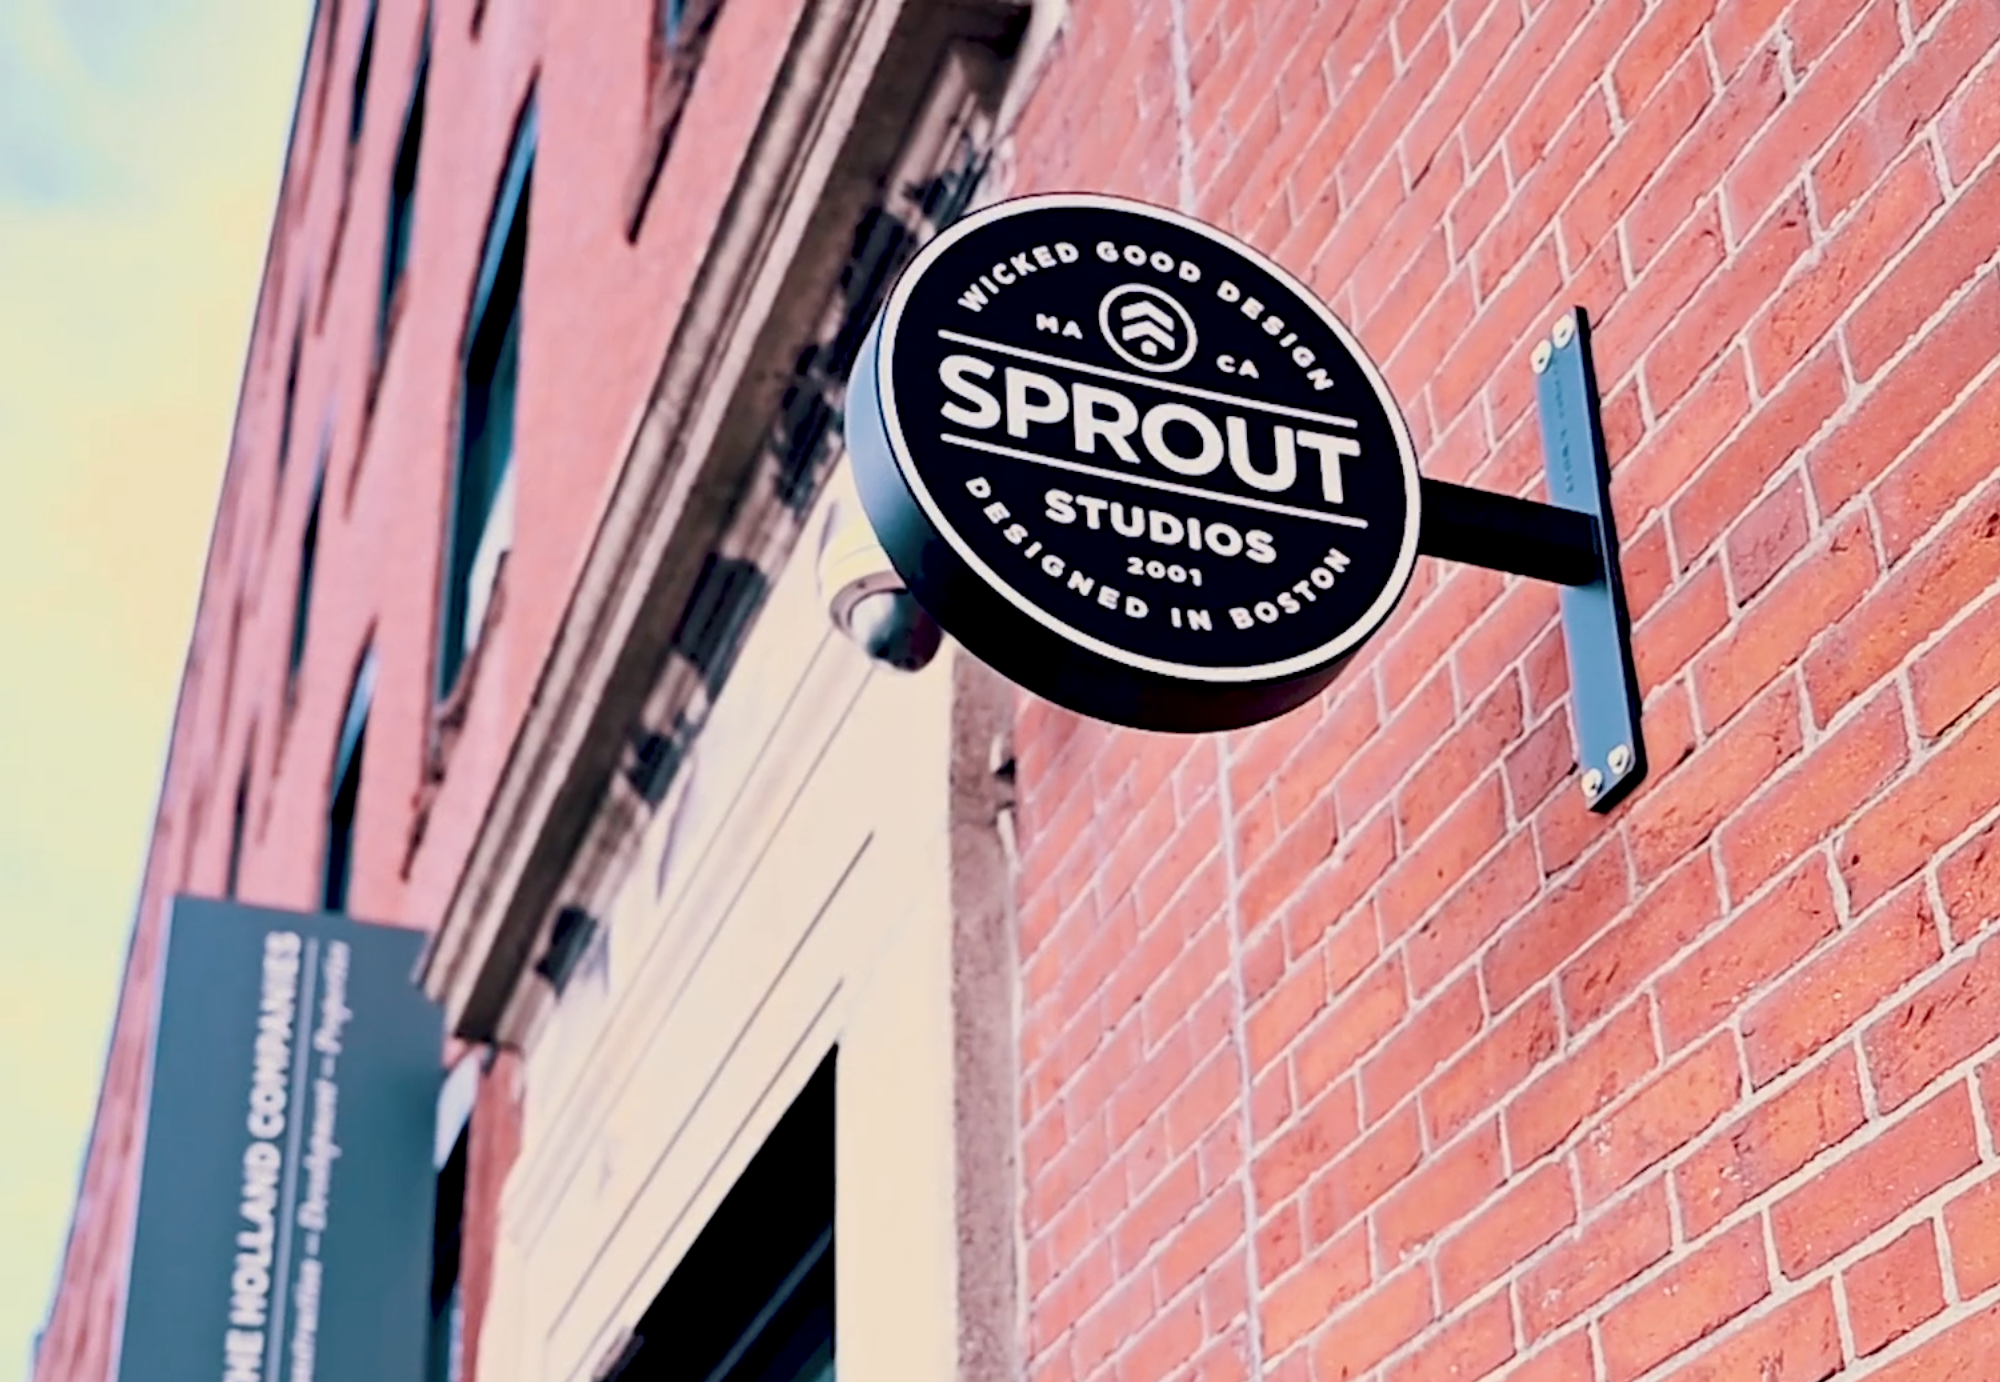 Photo of the Sprout Studios sign outside their door